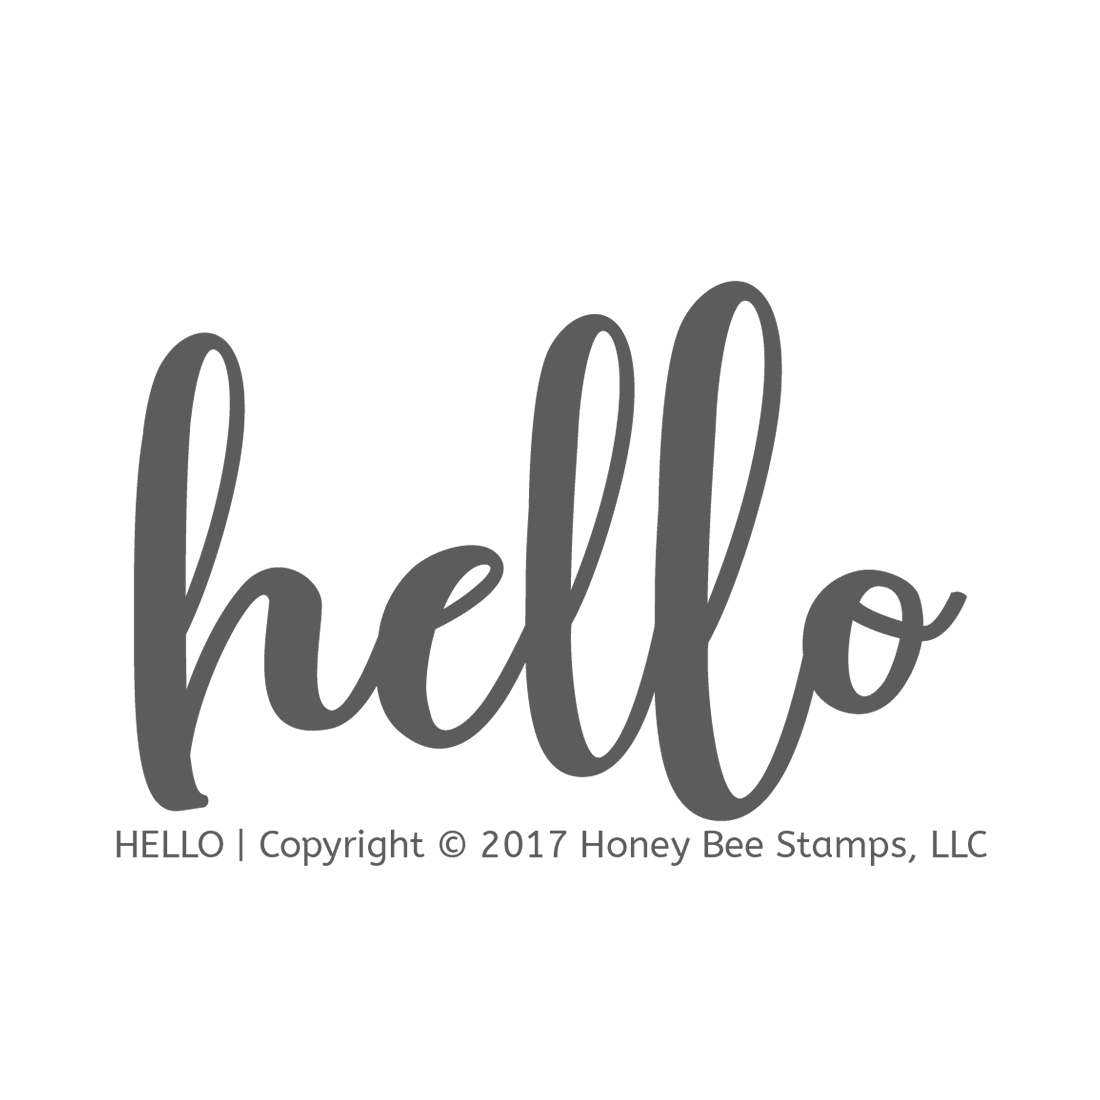 Honeybee Bee Stamps - Hello | 2x3 Stamp Set